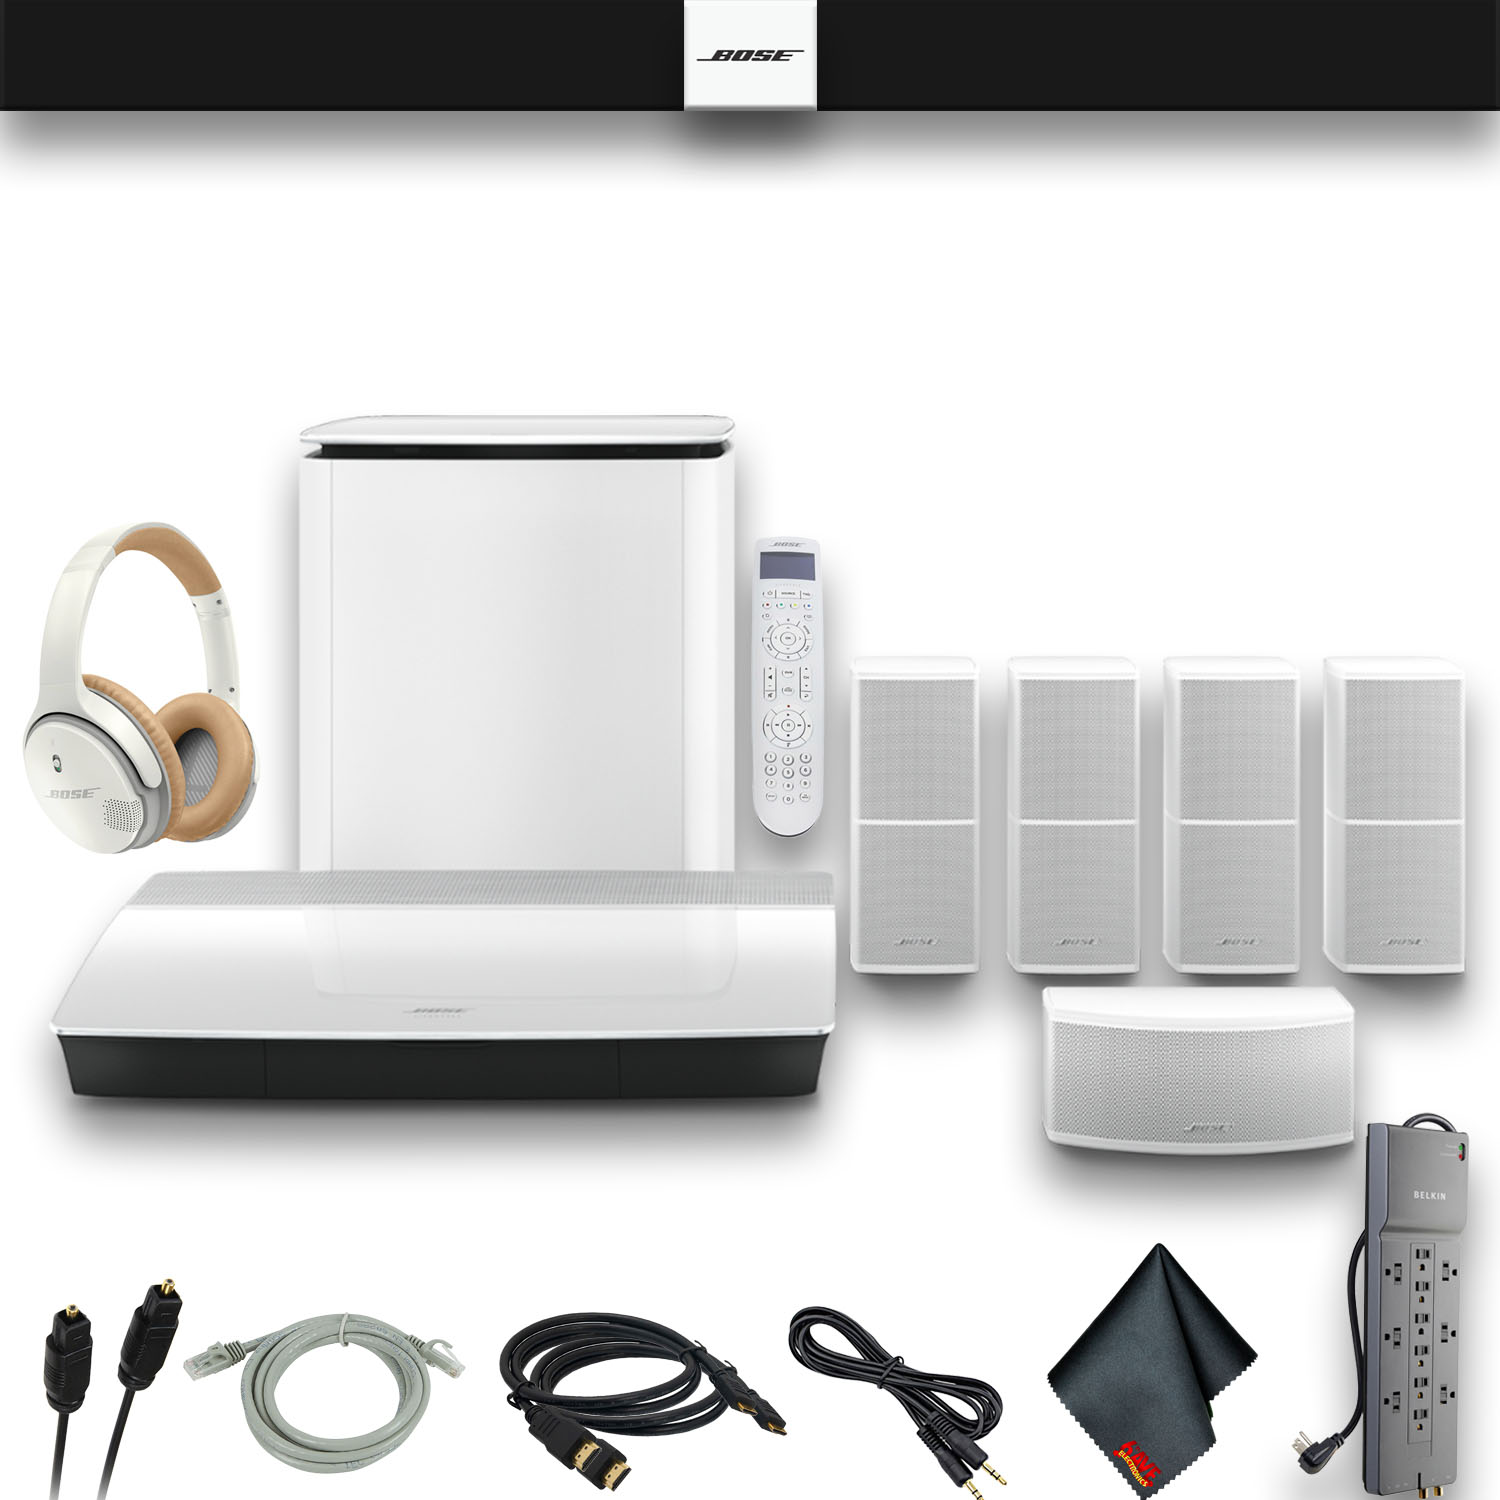 bose lifestyle 600 home theater system with jewel cube speakers (white) w optical cable, hdmi cables, aux cable, powerstrip, premium headphones and  home theater wiring bose jewel #12